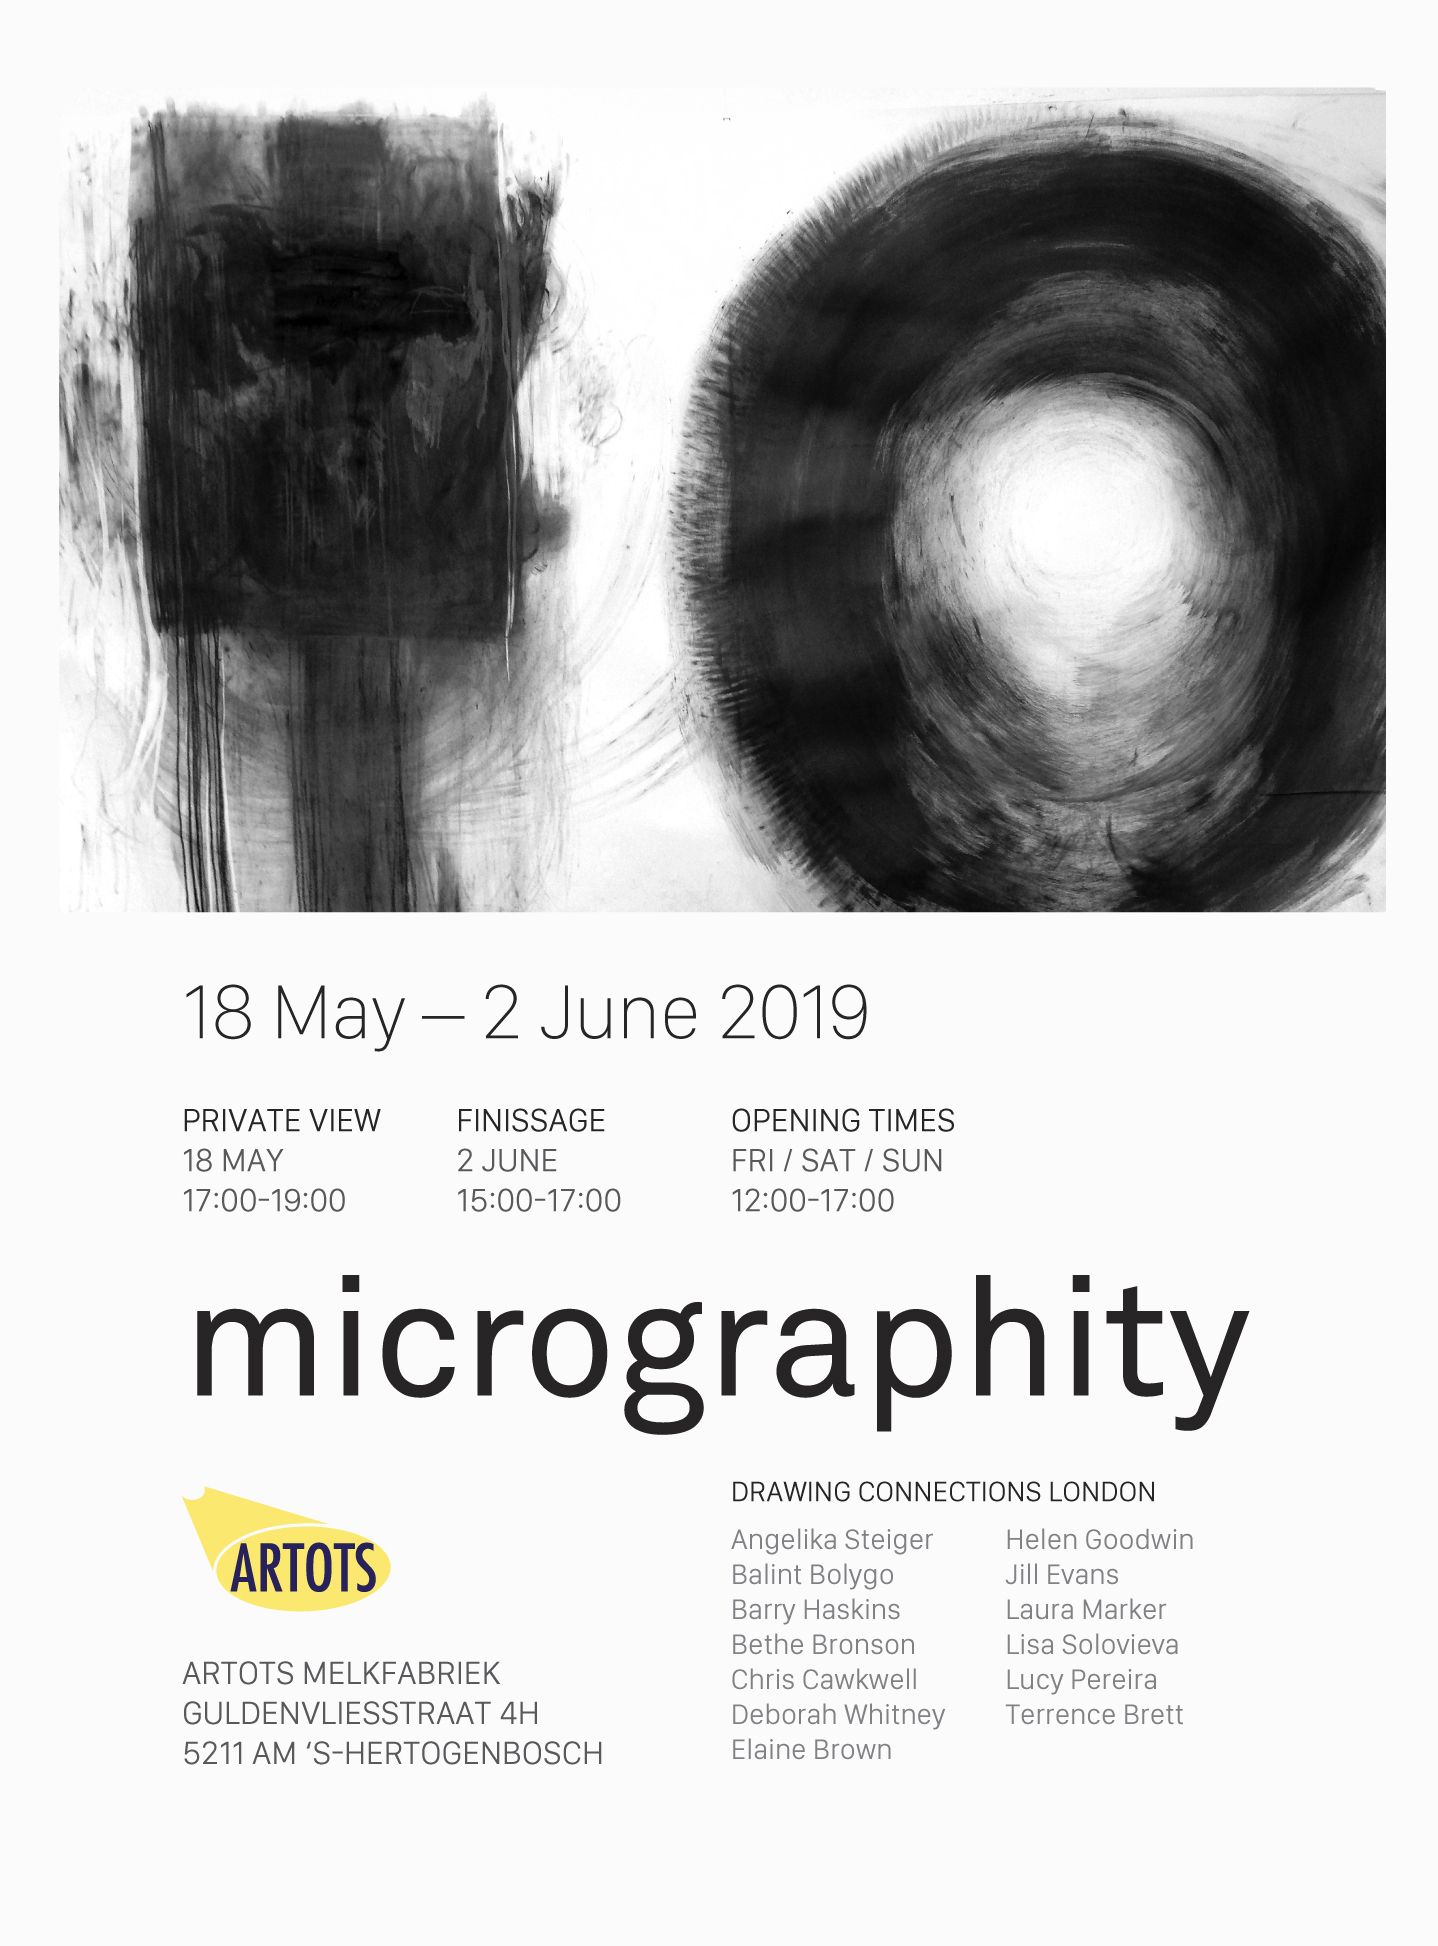 - Exhibition Dates: 18th May - 2nd June 2019Microgravity is the condition in which people or objects appear to be weightless. MICROGRAPHITY – which can be read as an amalgamation of Microgravity and graphite – is a new term (born of an albeit accidental collaboration), which reflects on the collaborative nature of the group, and their resistance to any specific stance on what drawing 'is' or 'could be'. Resonating with the groups position on the periphery of the art market and the accepted gallery system, – preferring a collaborative and supportive philosophy of shared communication and activity that brings about both individual and group development.By confining their activities to drawing in its broadest sense they hope to broaden expectations and understanding of what contemporary drawing can be and offer a platform for collaborative drawing in its expanded formshttp://www.artots.nl/https://www.facebook.com/events/2211090812309456/